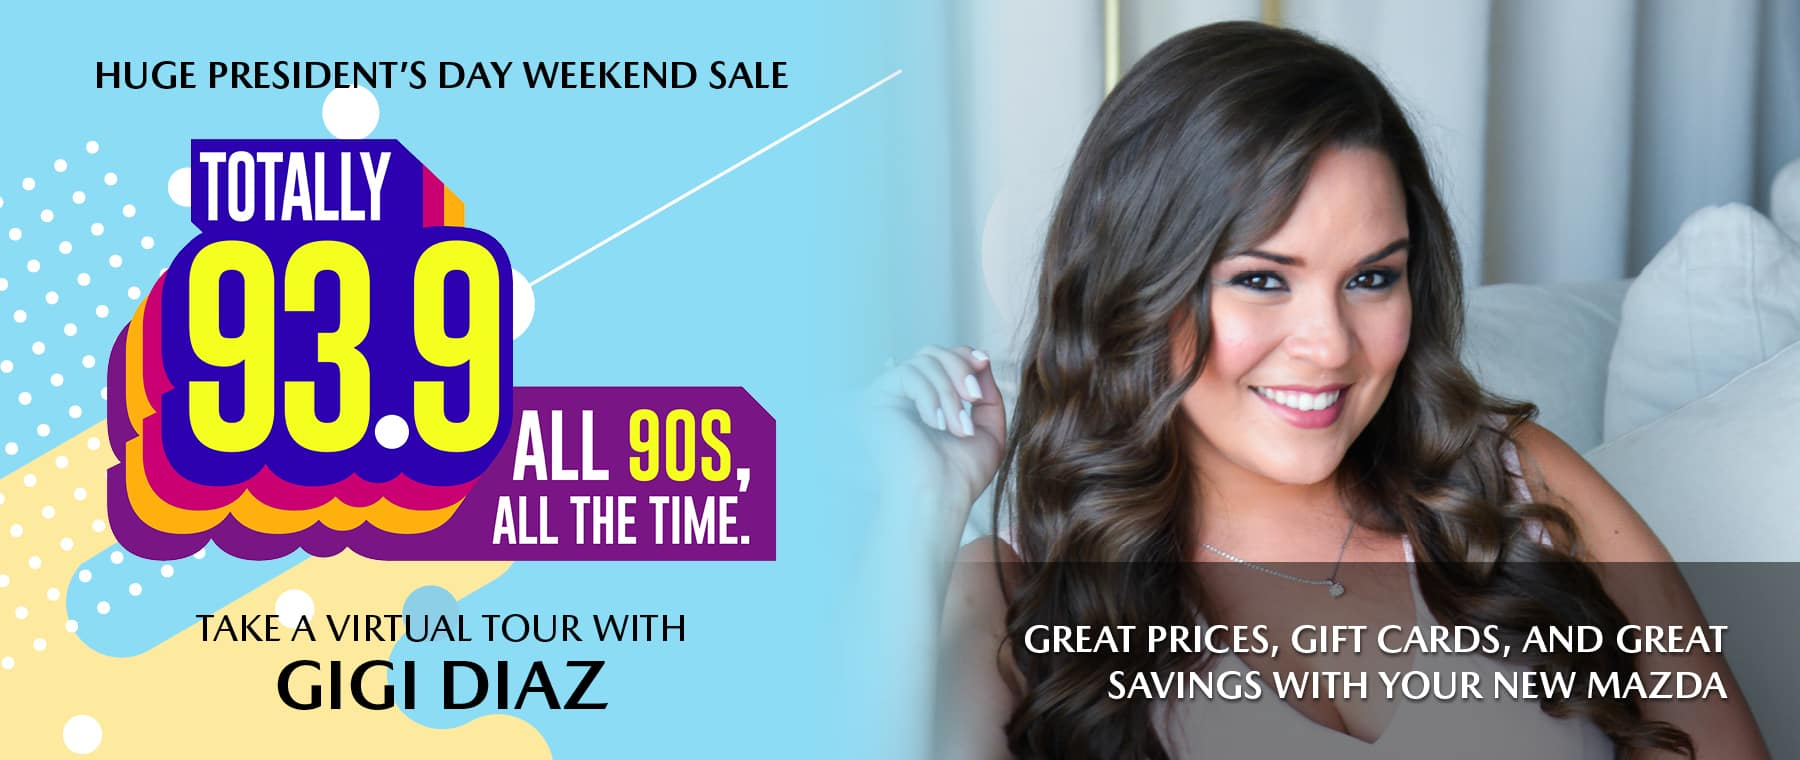 Huge president's day weekend sale. Totally 93.9, all 90s all the time. Take a virtual tour with Gigi Diaz. Great prices, gift cards, and our new Mazda sale.